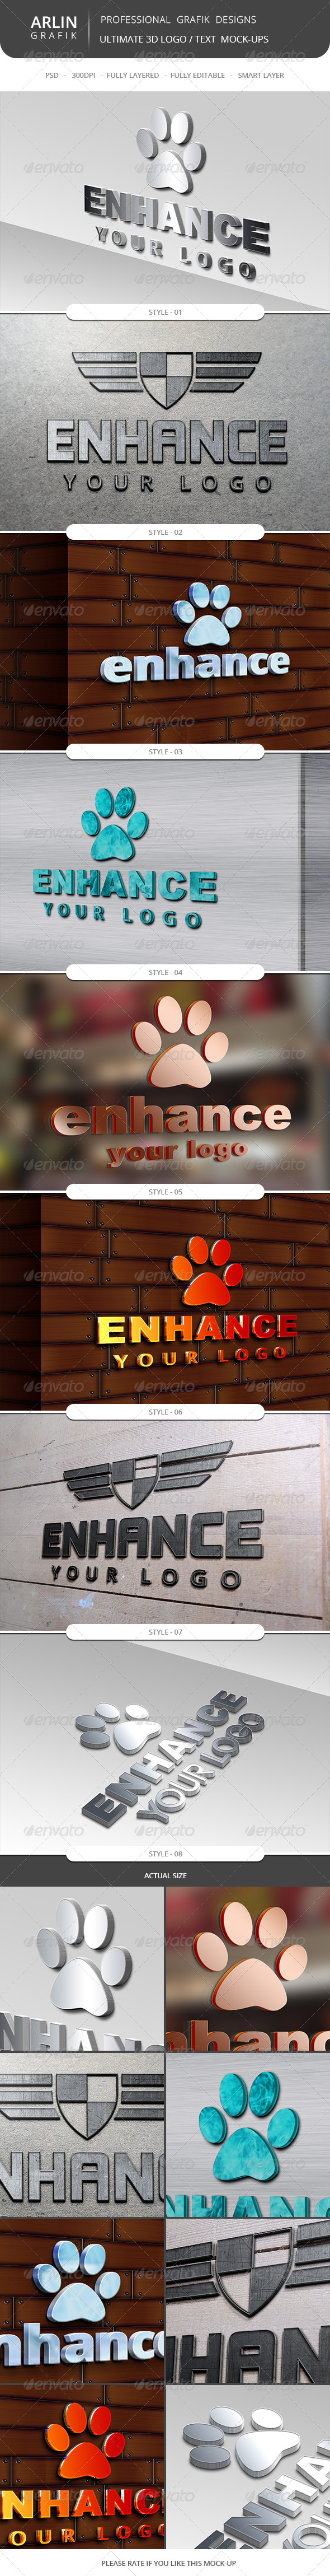 Ultimate 3D Logo Mockups - Logo Product Mock-Ups